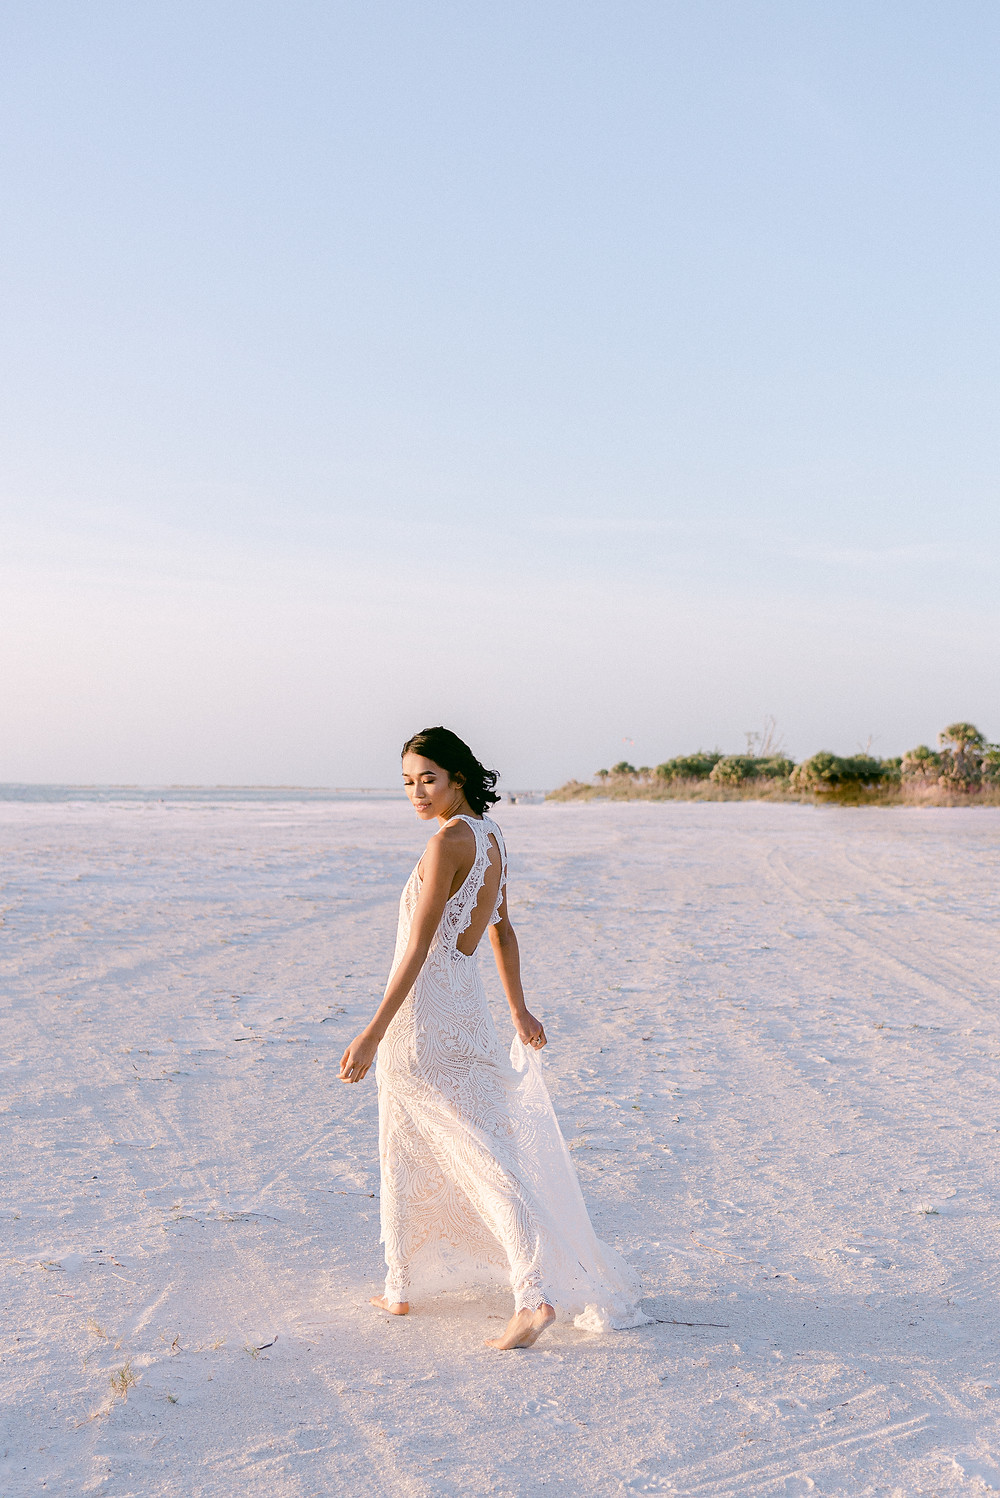 wedding at Fort De Soto park in St Pete, Florida - Nina Bashaw Photography